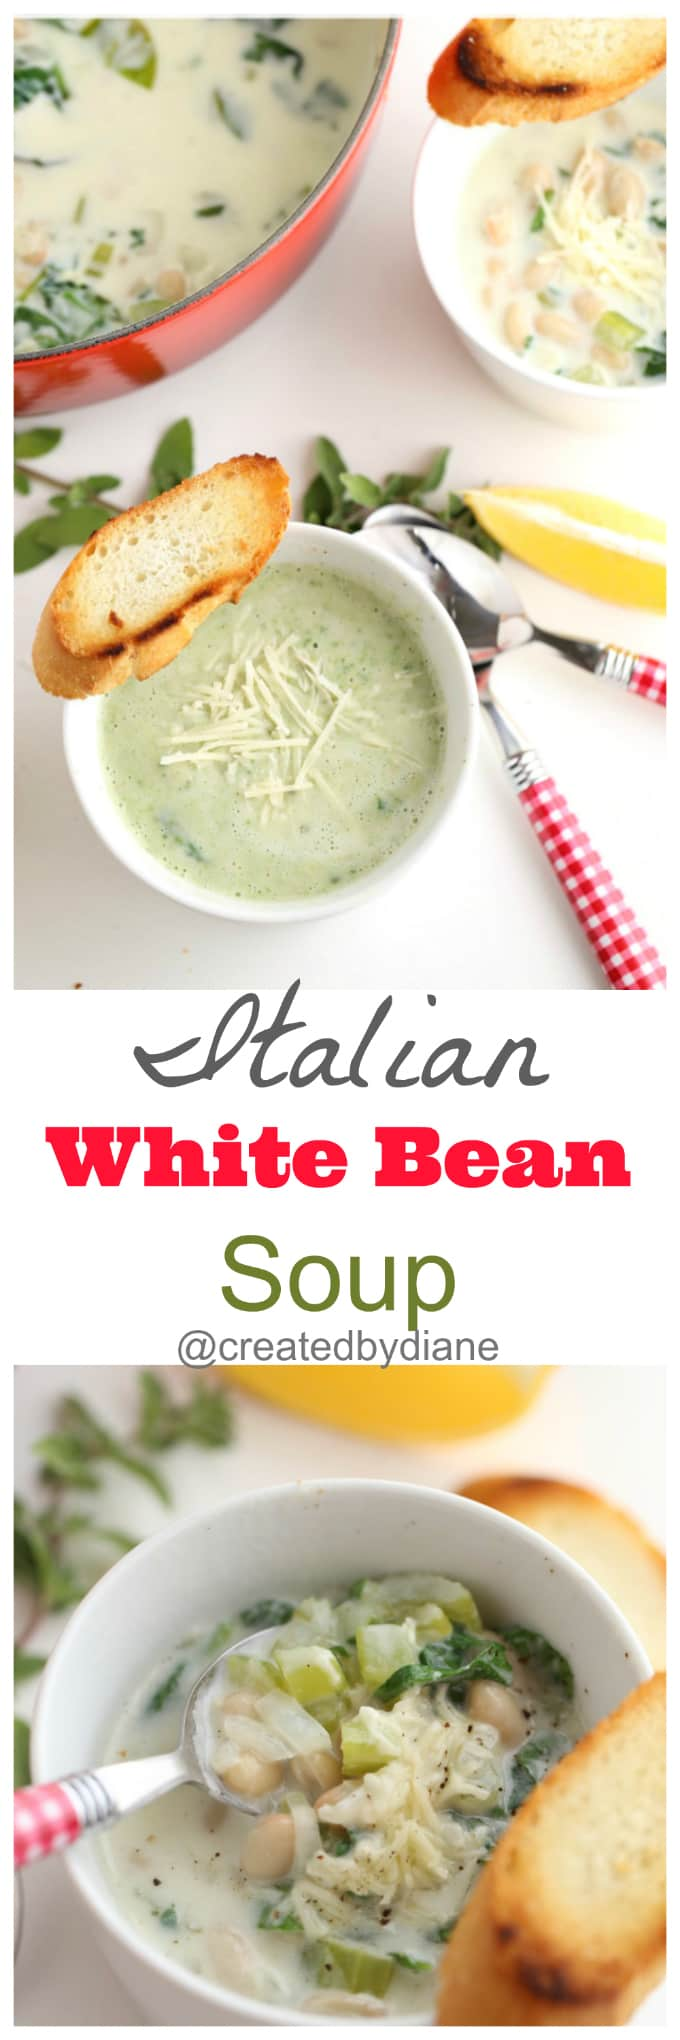 Italian White Bean Soup Recipe with Lemon from @createdbydiane